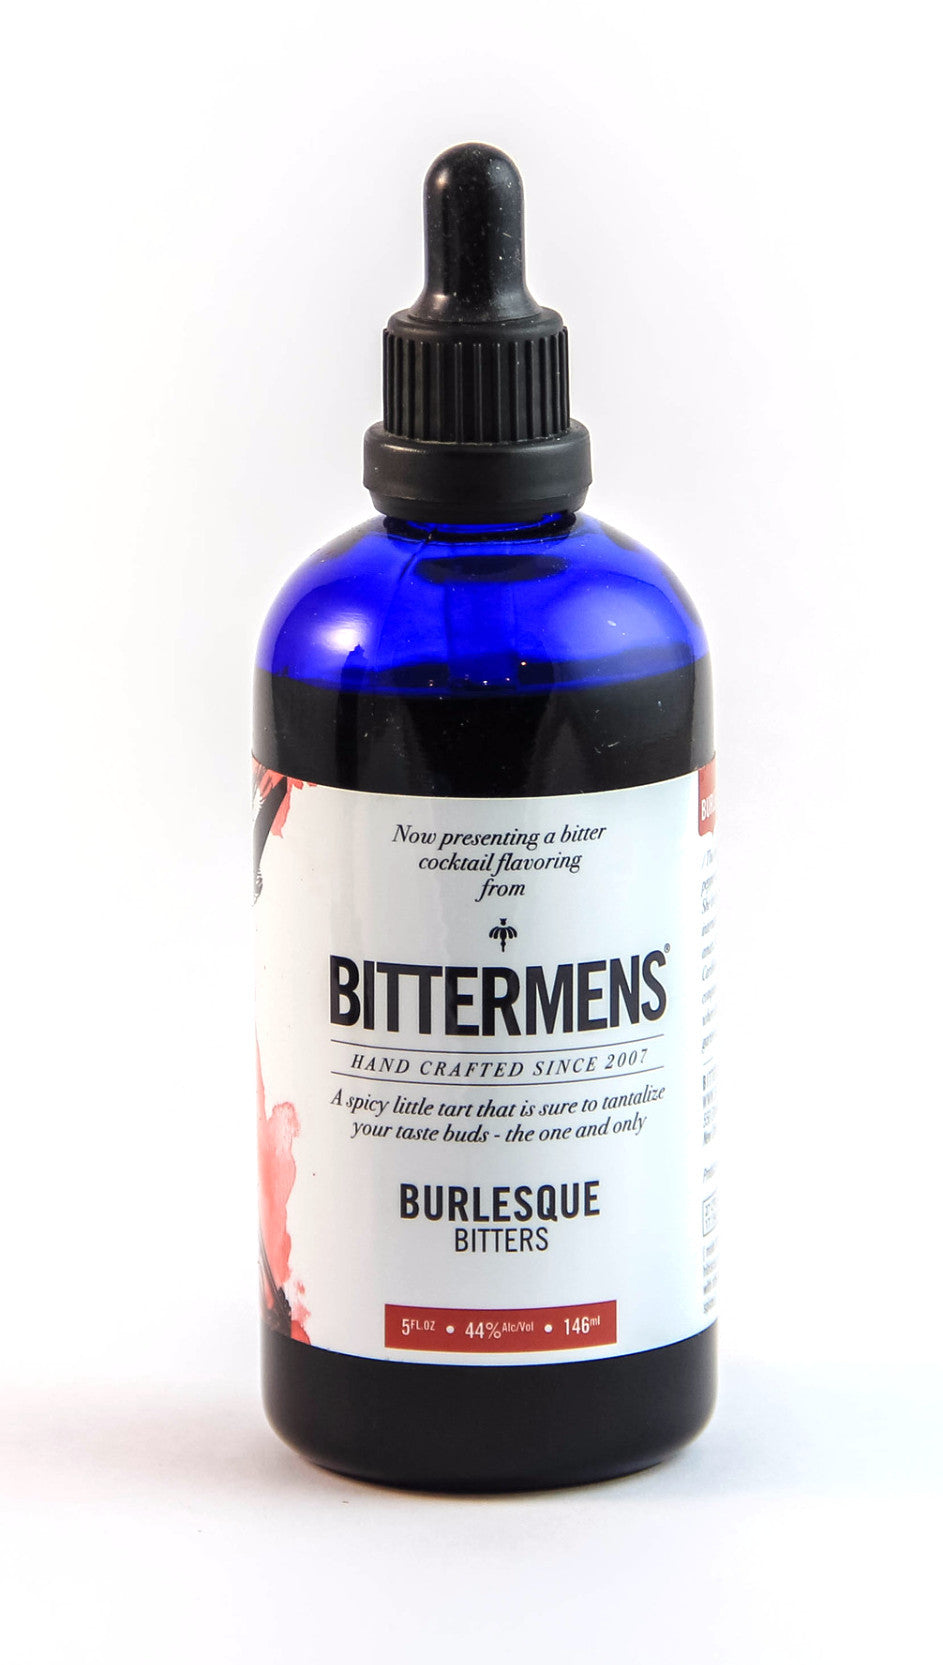 Bittermens Burlesque Bitters-Bitters, Syrups and Shrubs-The Meadow